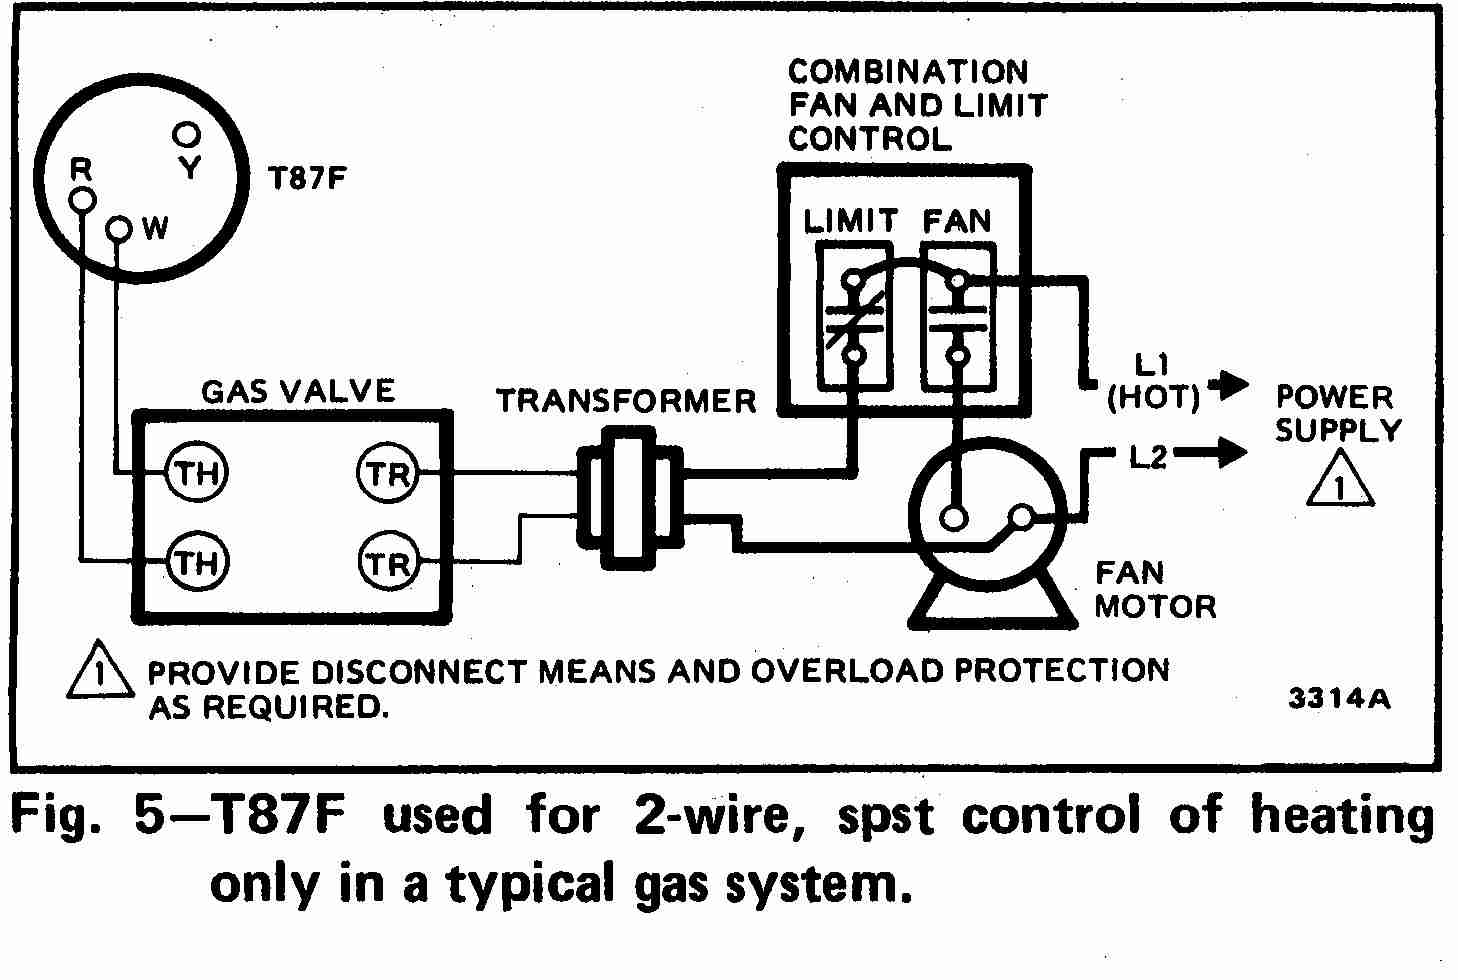 TT_T87F_0002_2Wg_DJF room thermostat wiring diagrams for hvac systems janitrol thermostat wiring diagram at bakdesigns.co